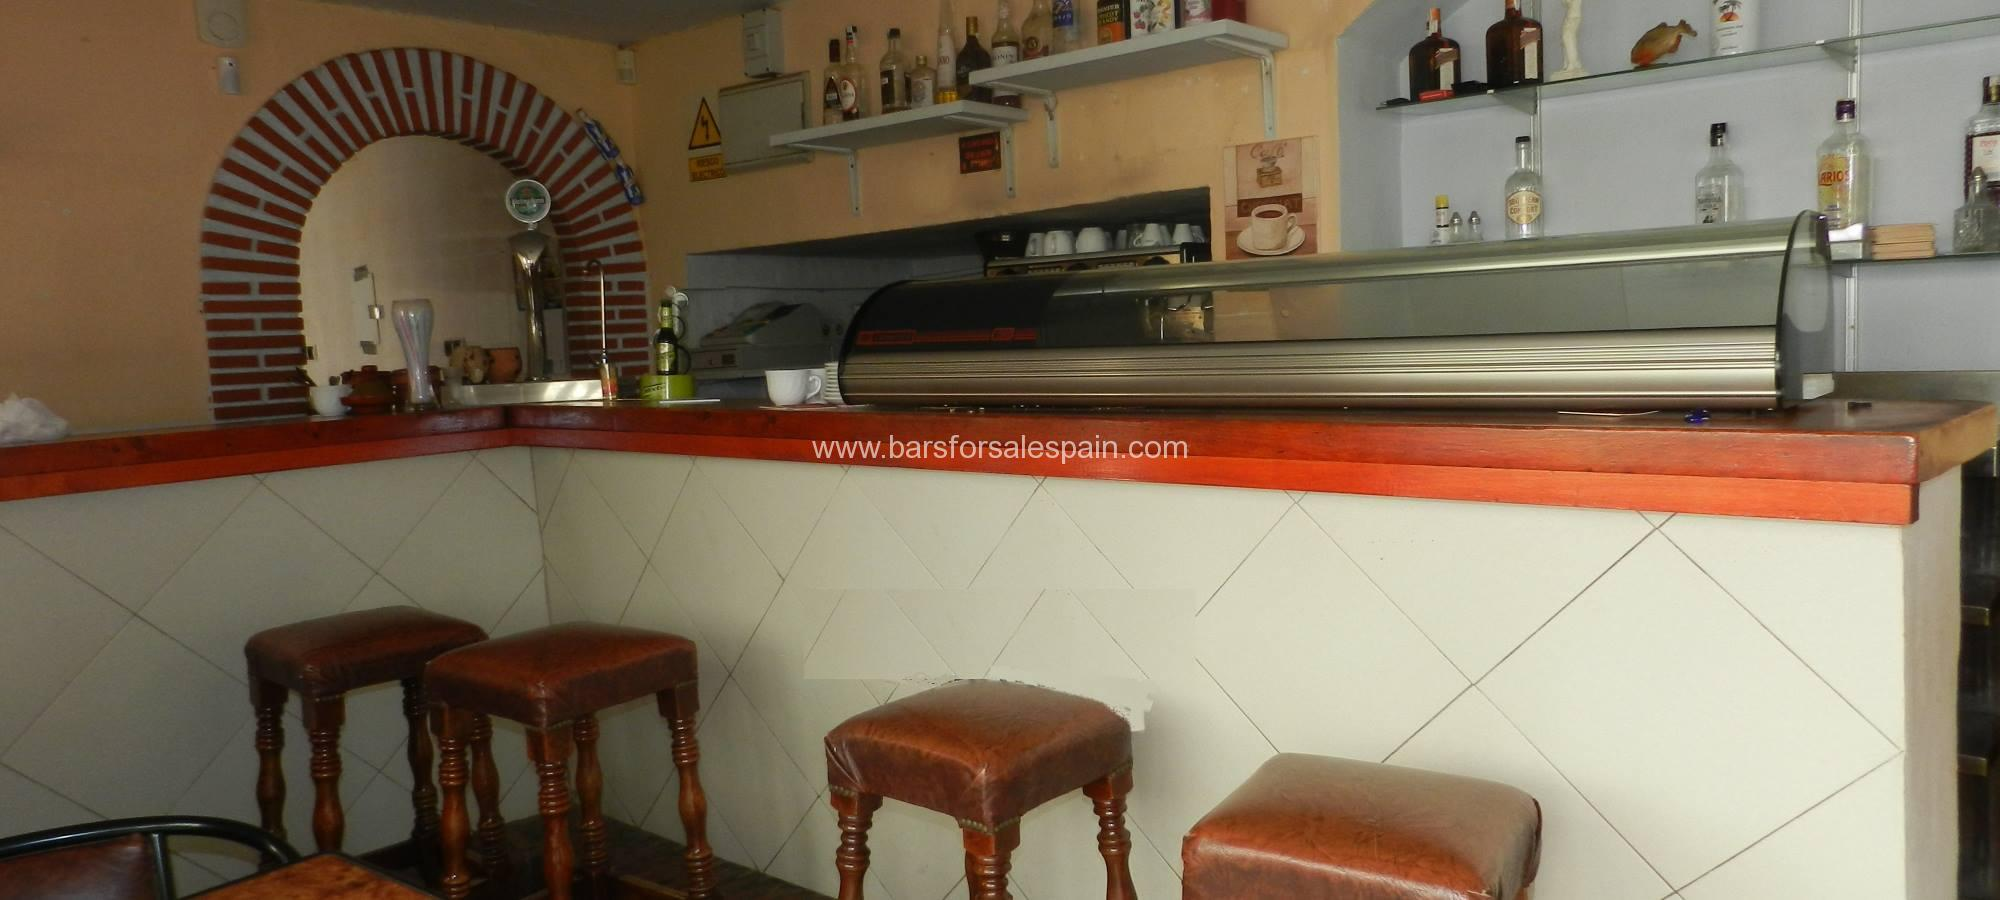 Cafe Bar For Lease in Fuengirola, Malaga, Spain